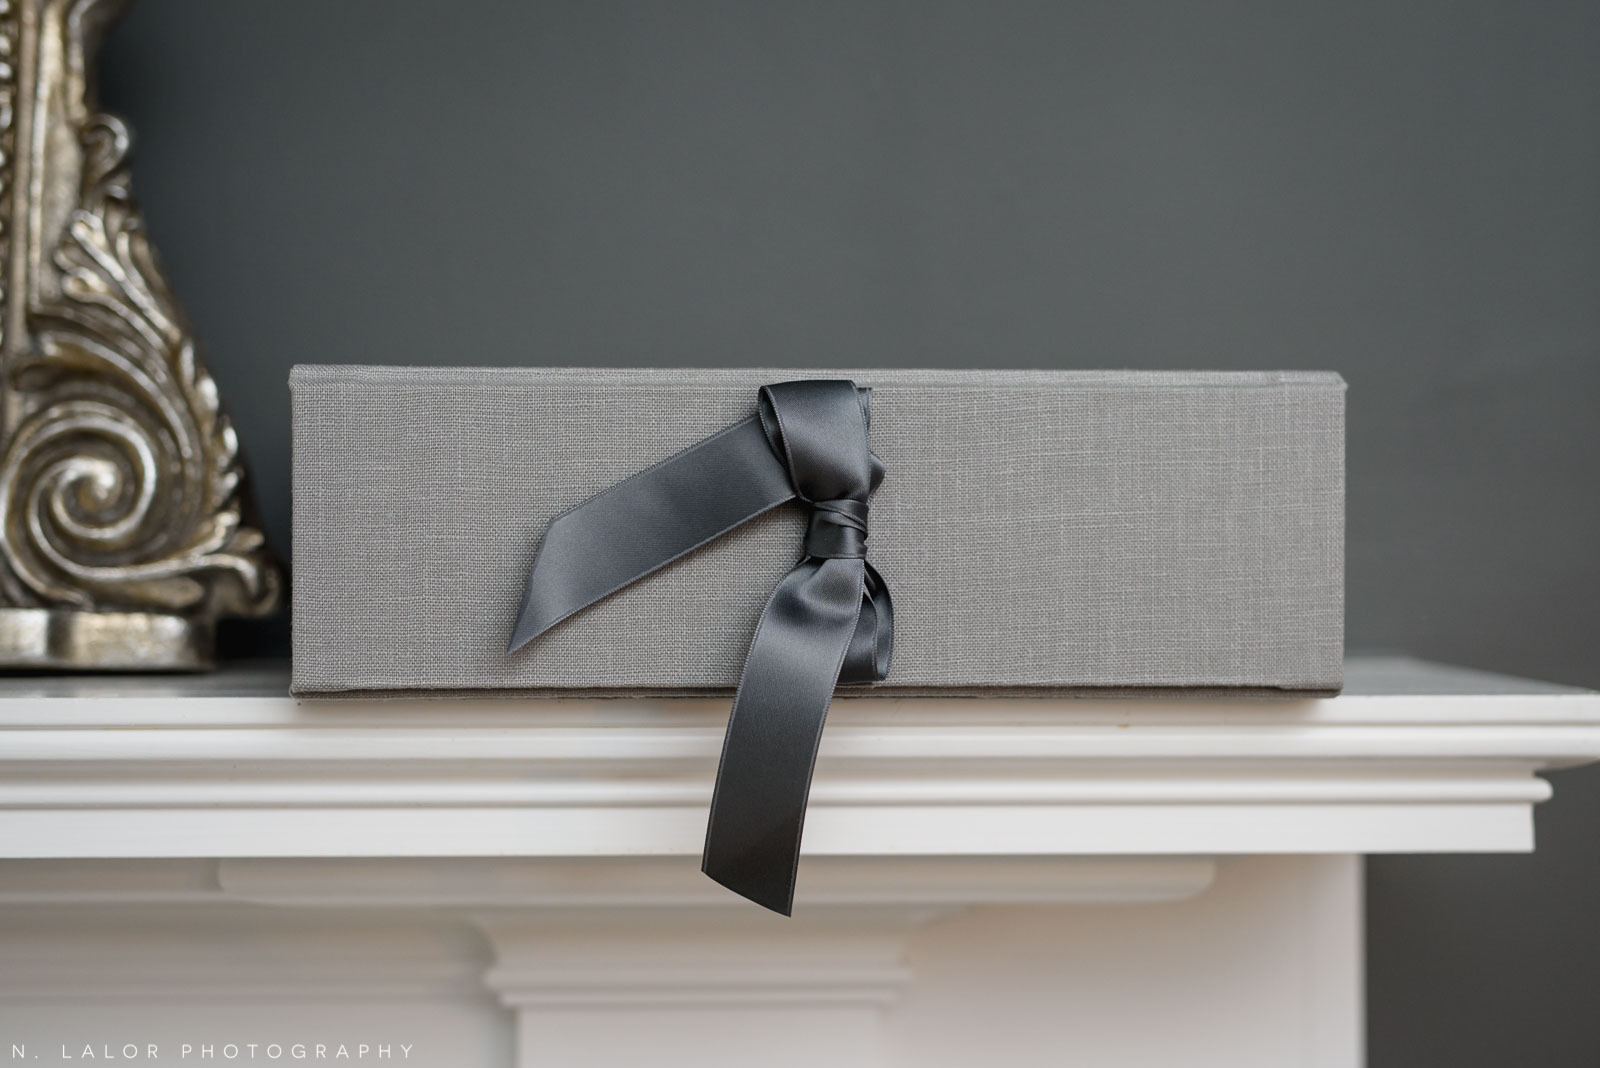 Beautiful photo presentation box by Cypress Albums. N. Lalor Photography's luxury fine art photography products, based in Greenwich, Connecticut.